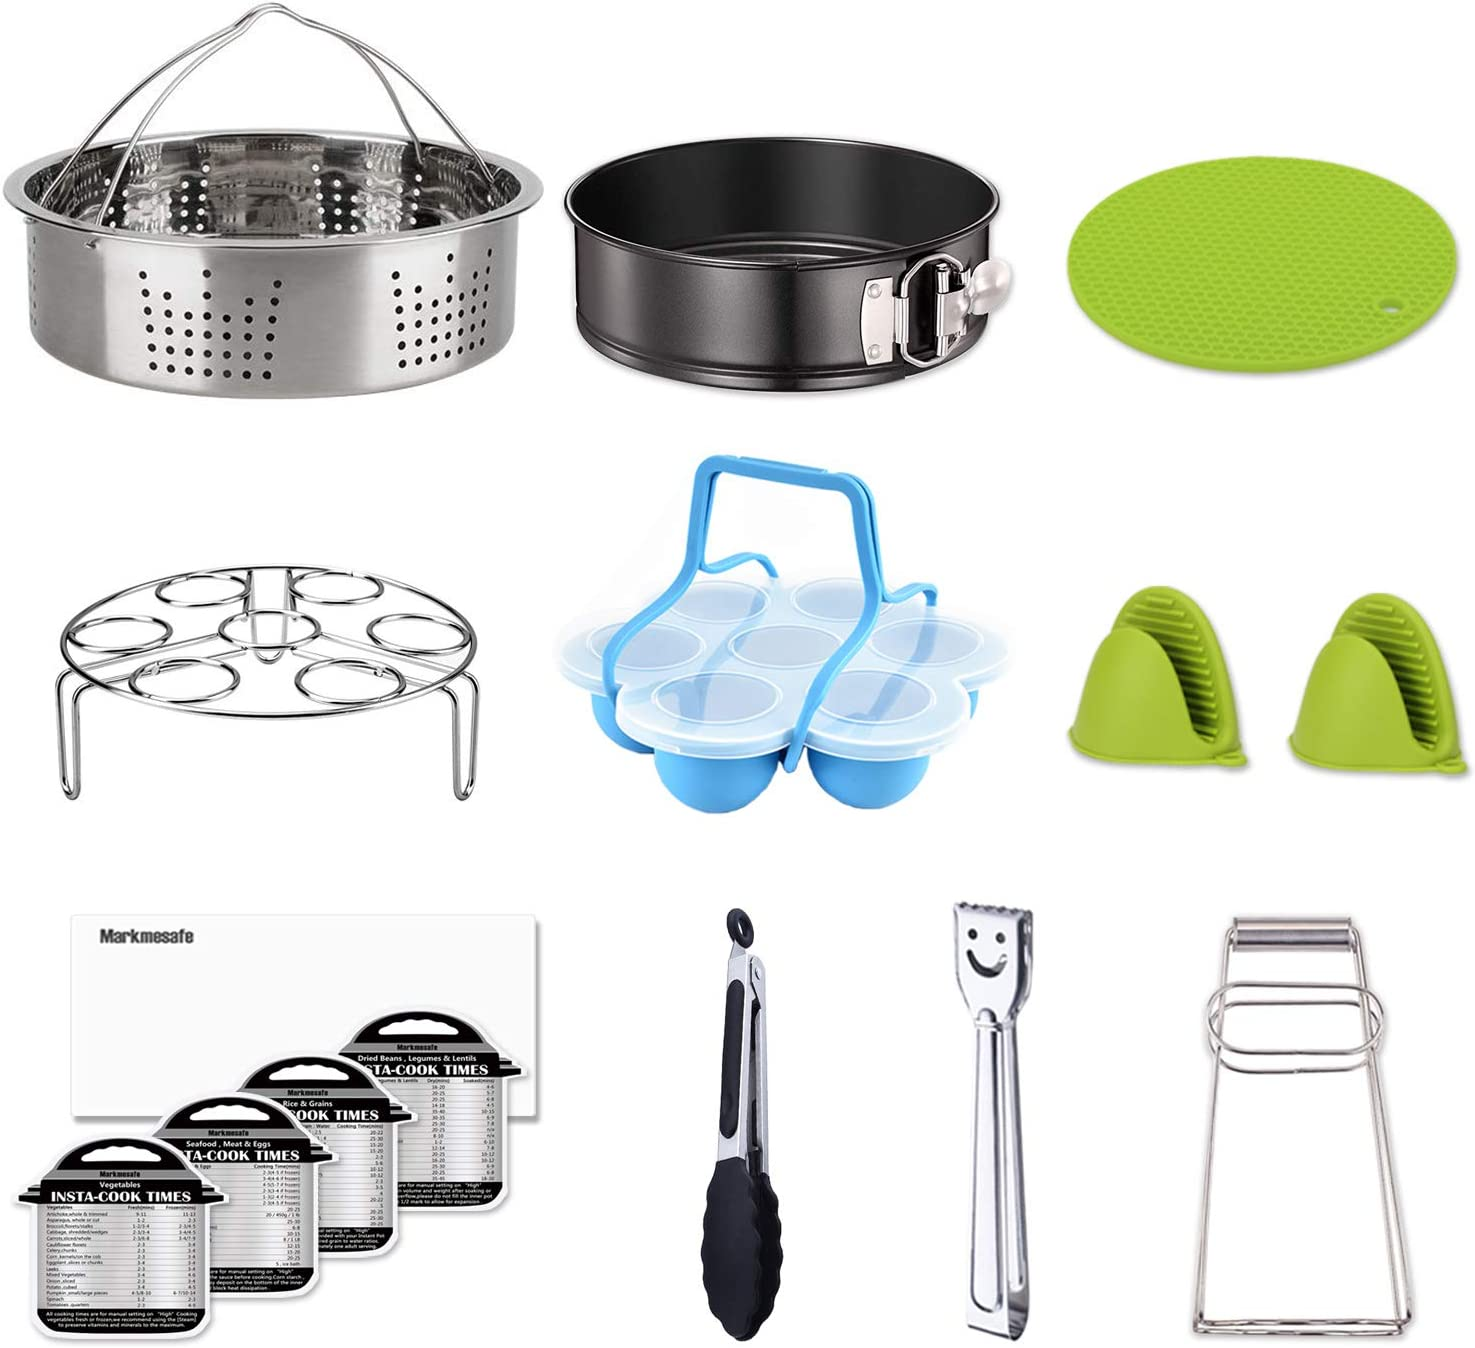 Springform Pan Pressure Cooker Accessories Set Fits Instant pot 6,8 Qt Magnetic Cheat Sheets Silicon Egg Bites Mold Egg Steamer Rack 15-Piece Include Steamer Basket for Instant Pot Accessories